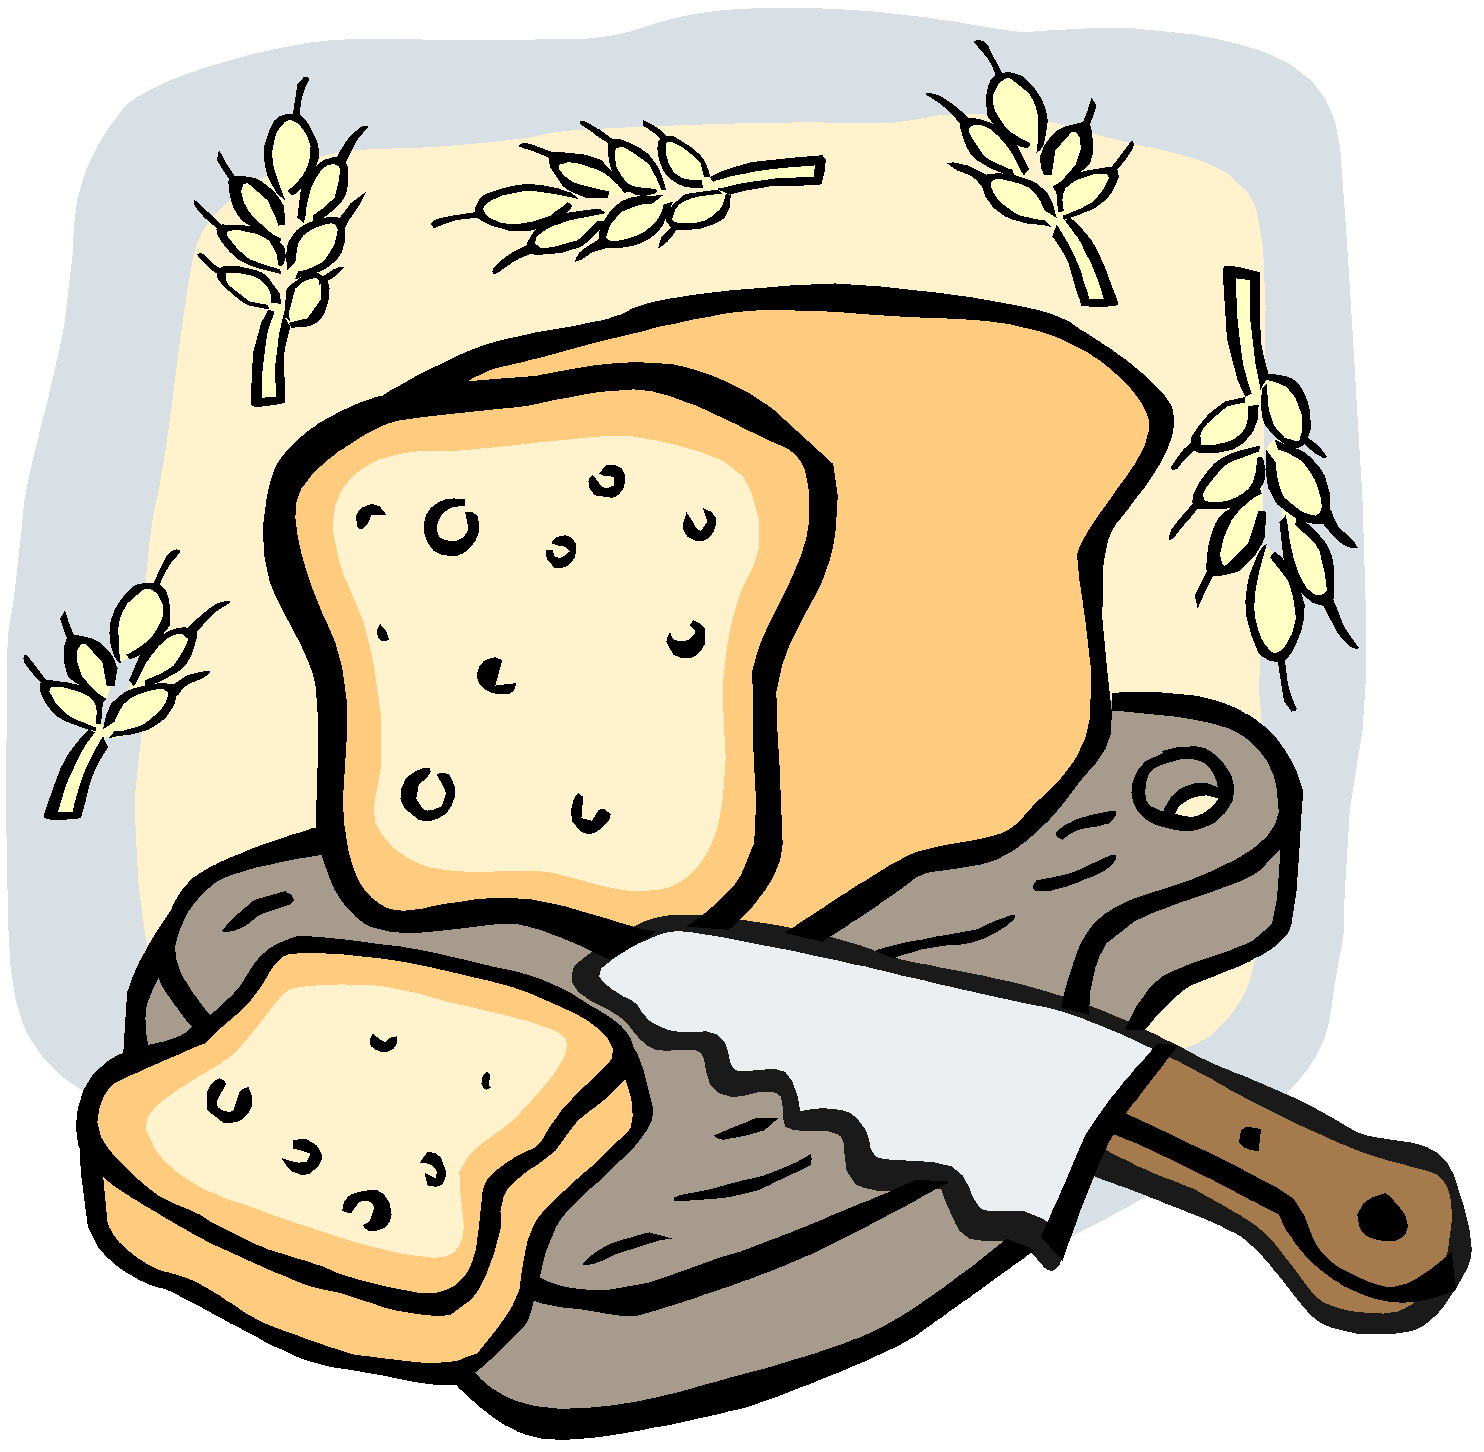 2 slices of bread clipart banner download Free Breads Cliparts, Download Free Clip Art, Free Clip Art on ... banner download